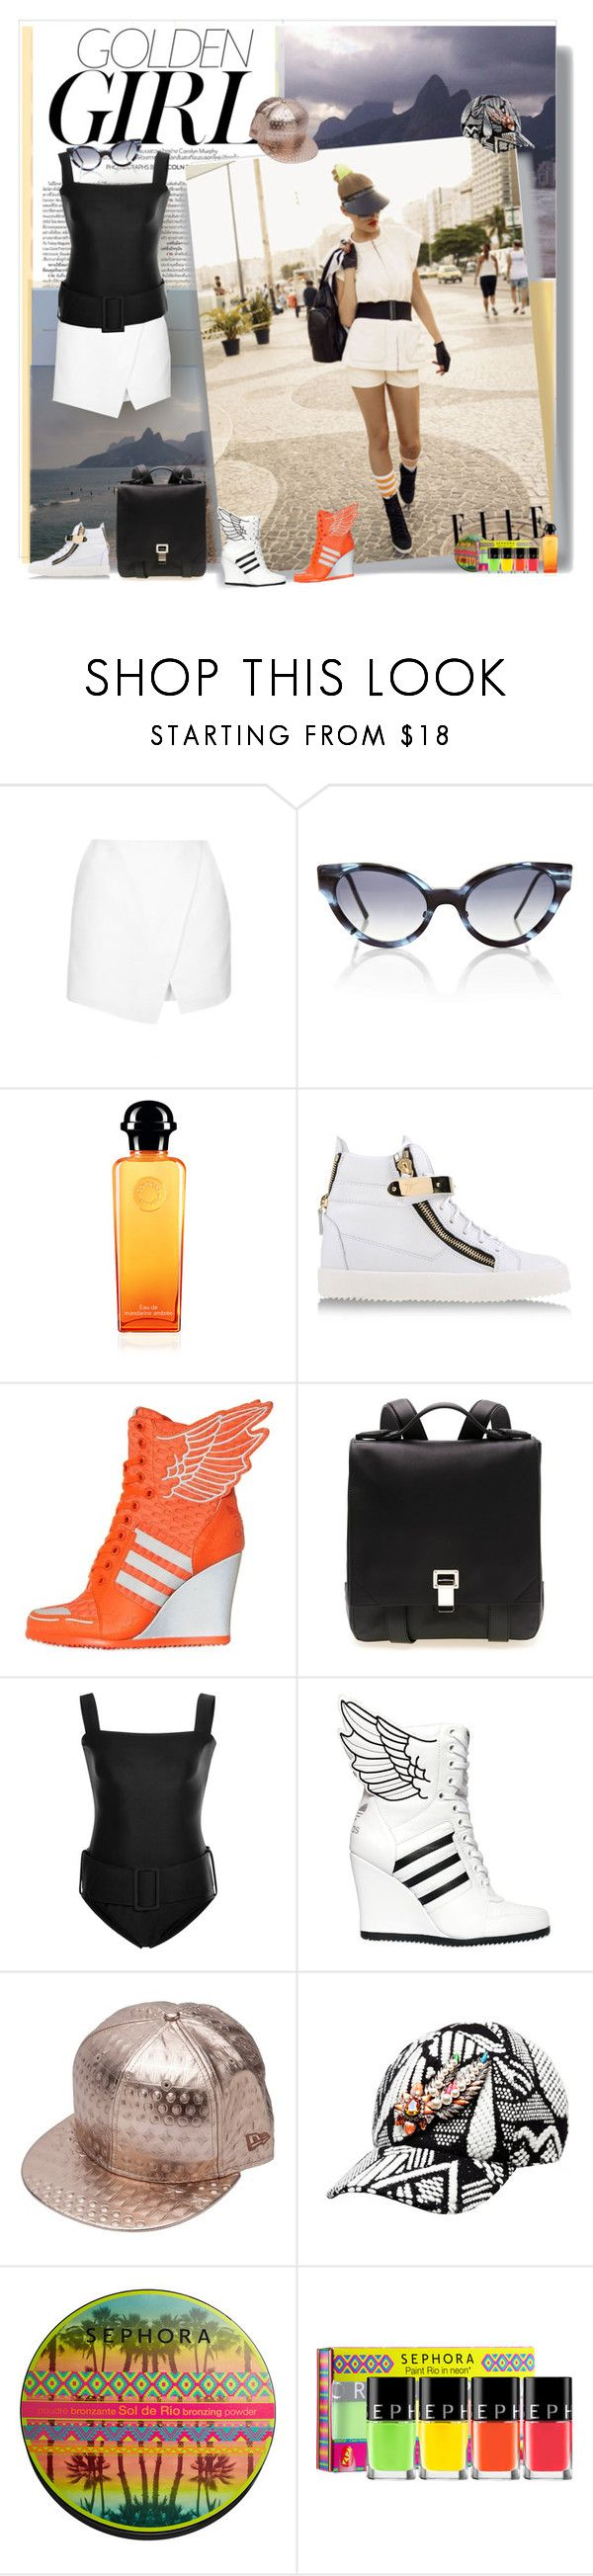 """Golden Girl"" by selmendonca ❤ liked on Polyvore featuring Murphy, IPANEMA, Topshop, Cutler and Gross, Giuseppe Zanotti, adidas, Proenza Schouler, ADRIANA DEGREAS, Juun.j and Shourouk"